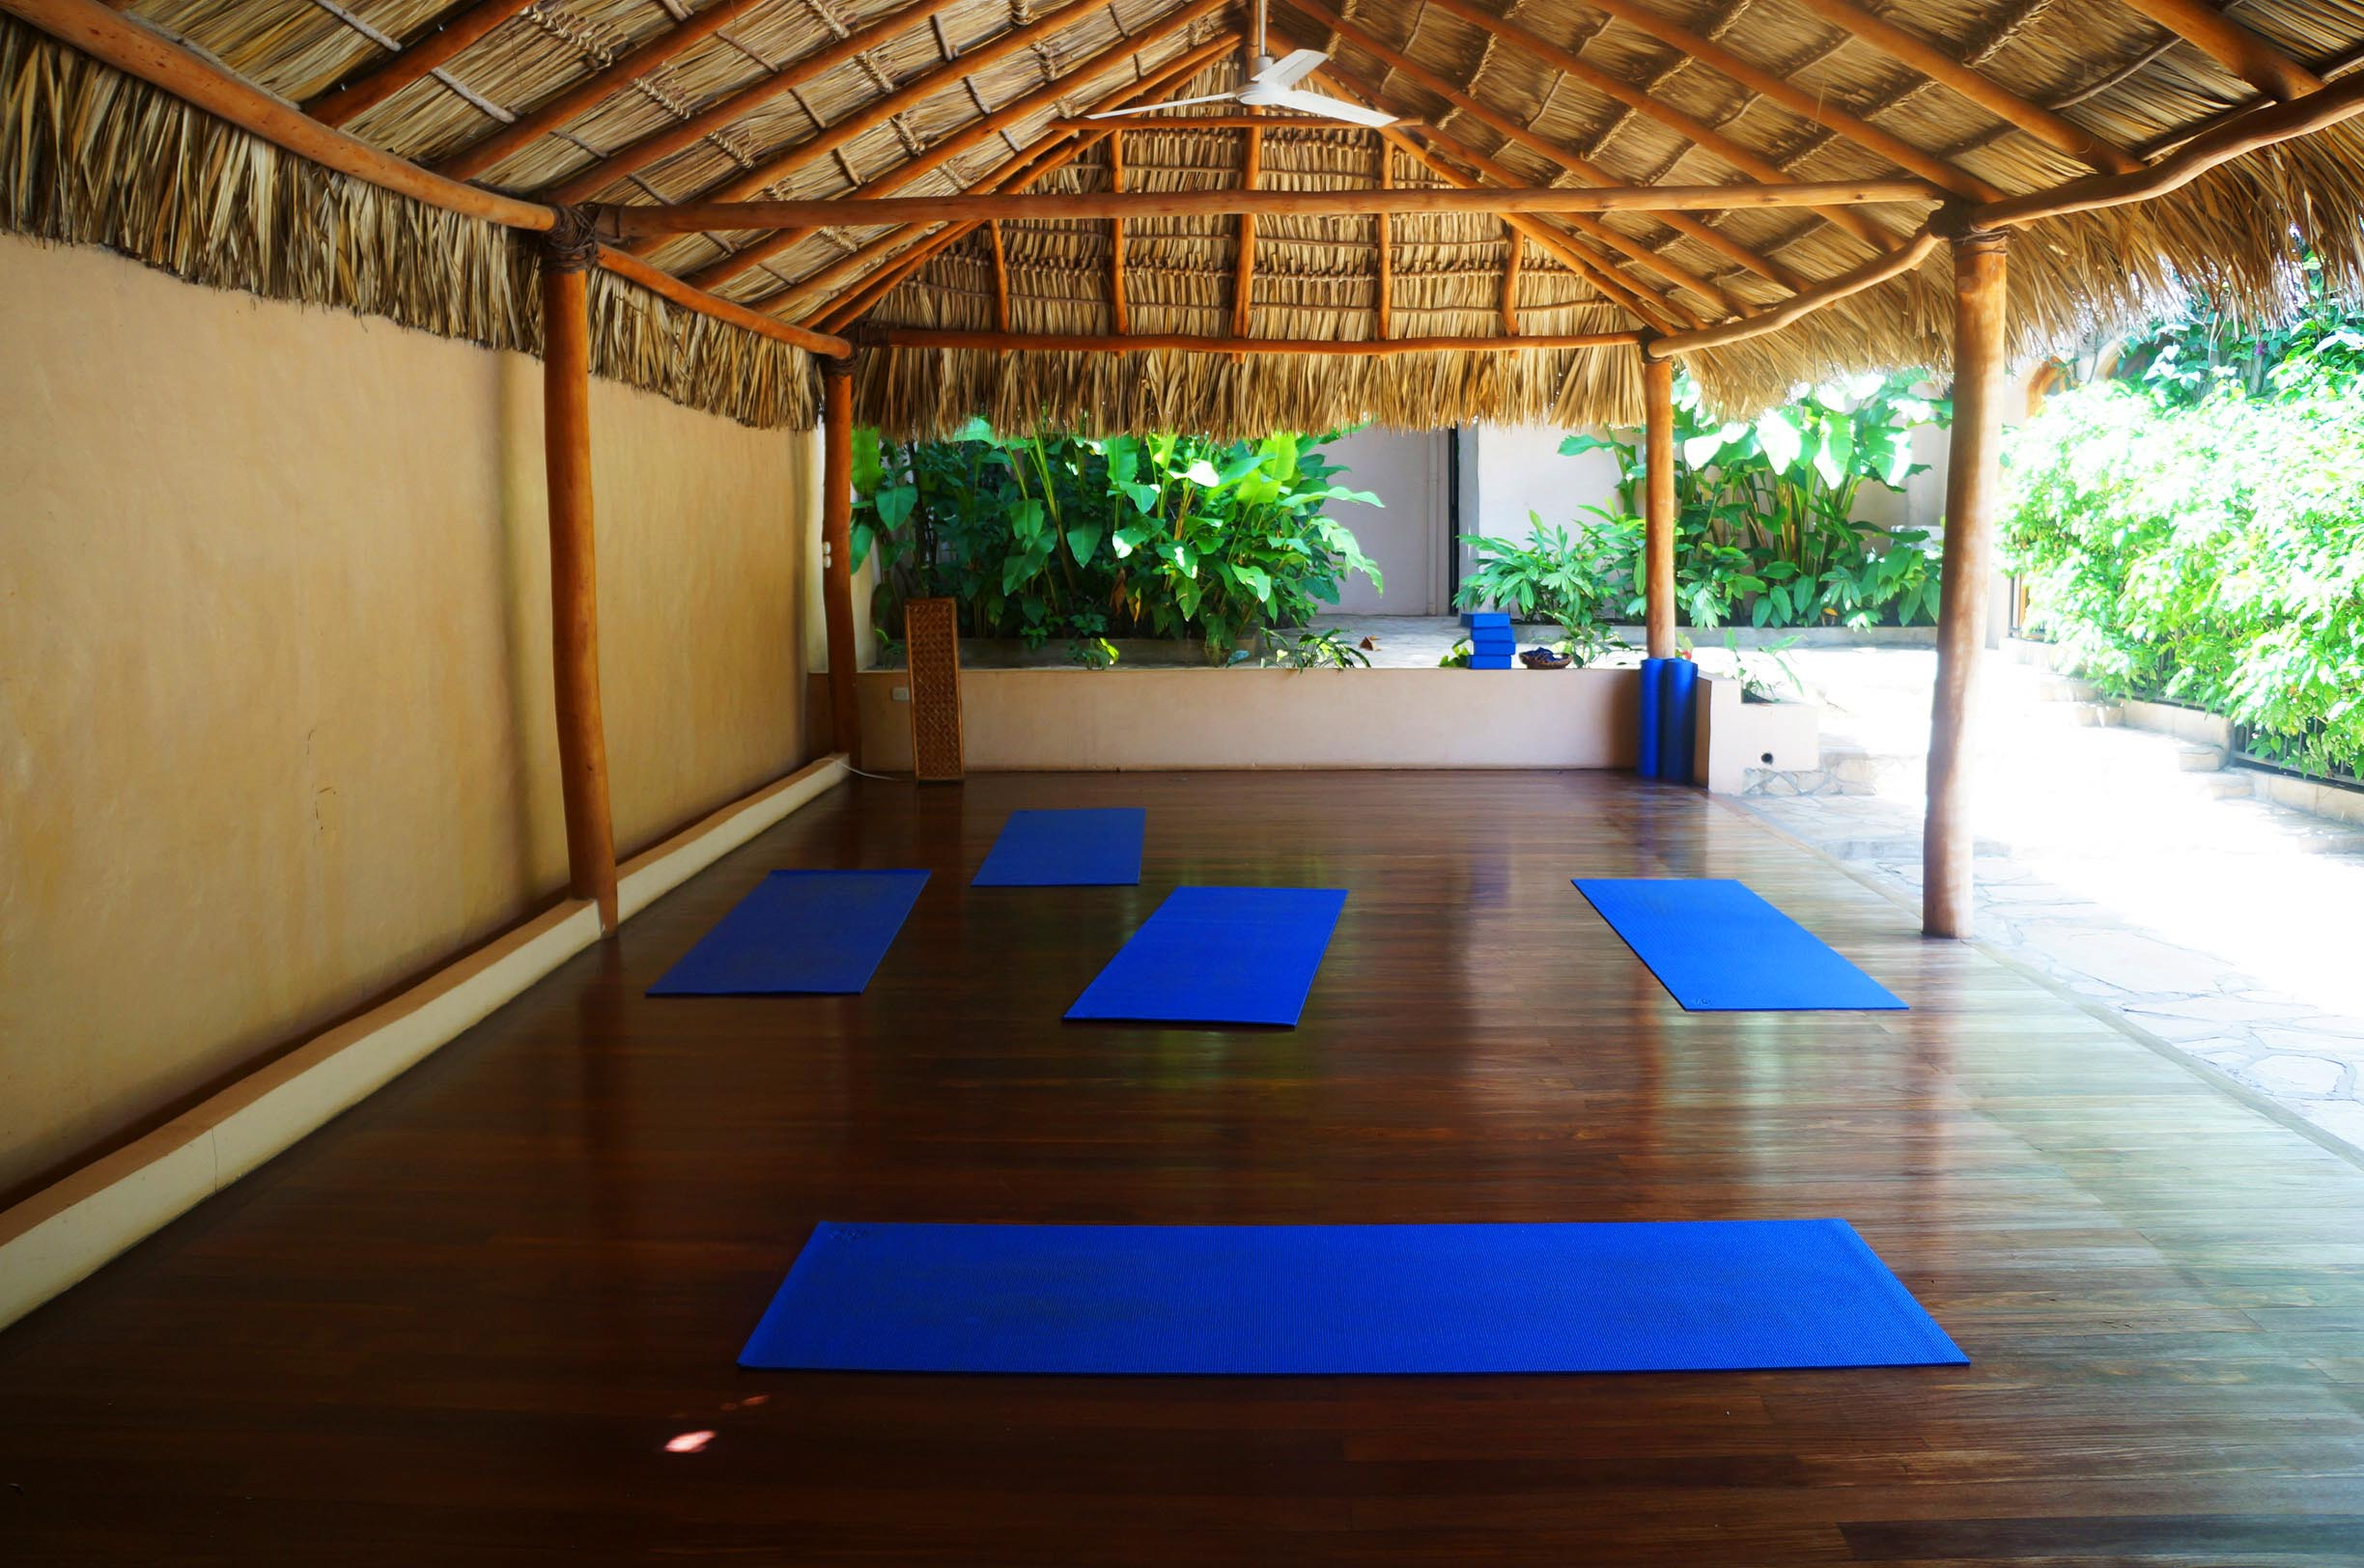 Luxury and Relaxation at Casa Lucía Yoga Boutique Hotel & Yoga Retreat in Granada, Nicaragua